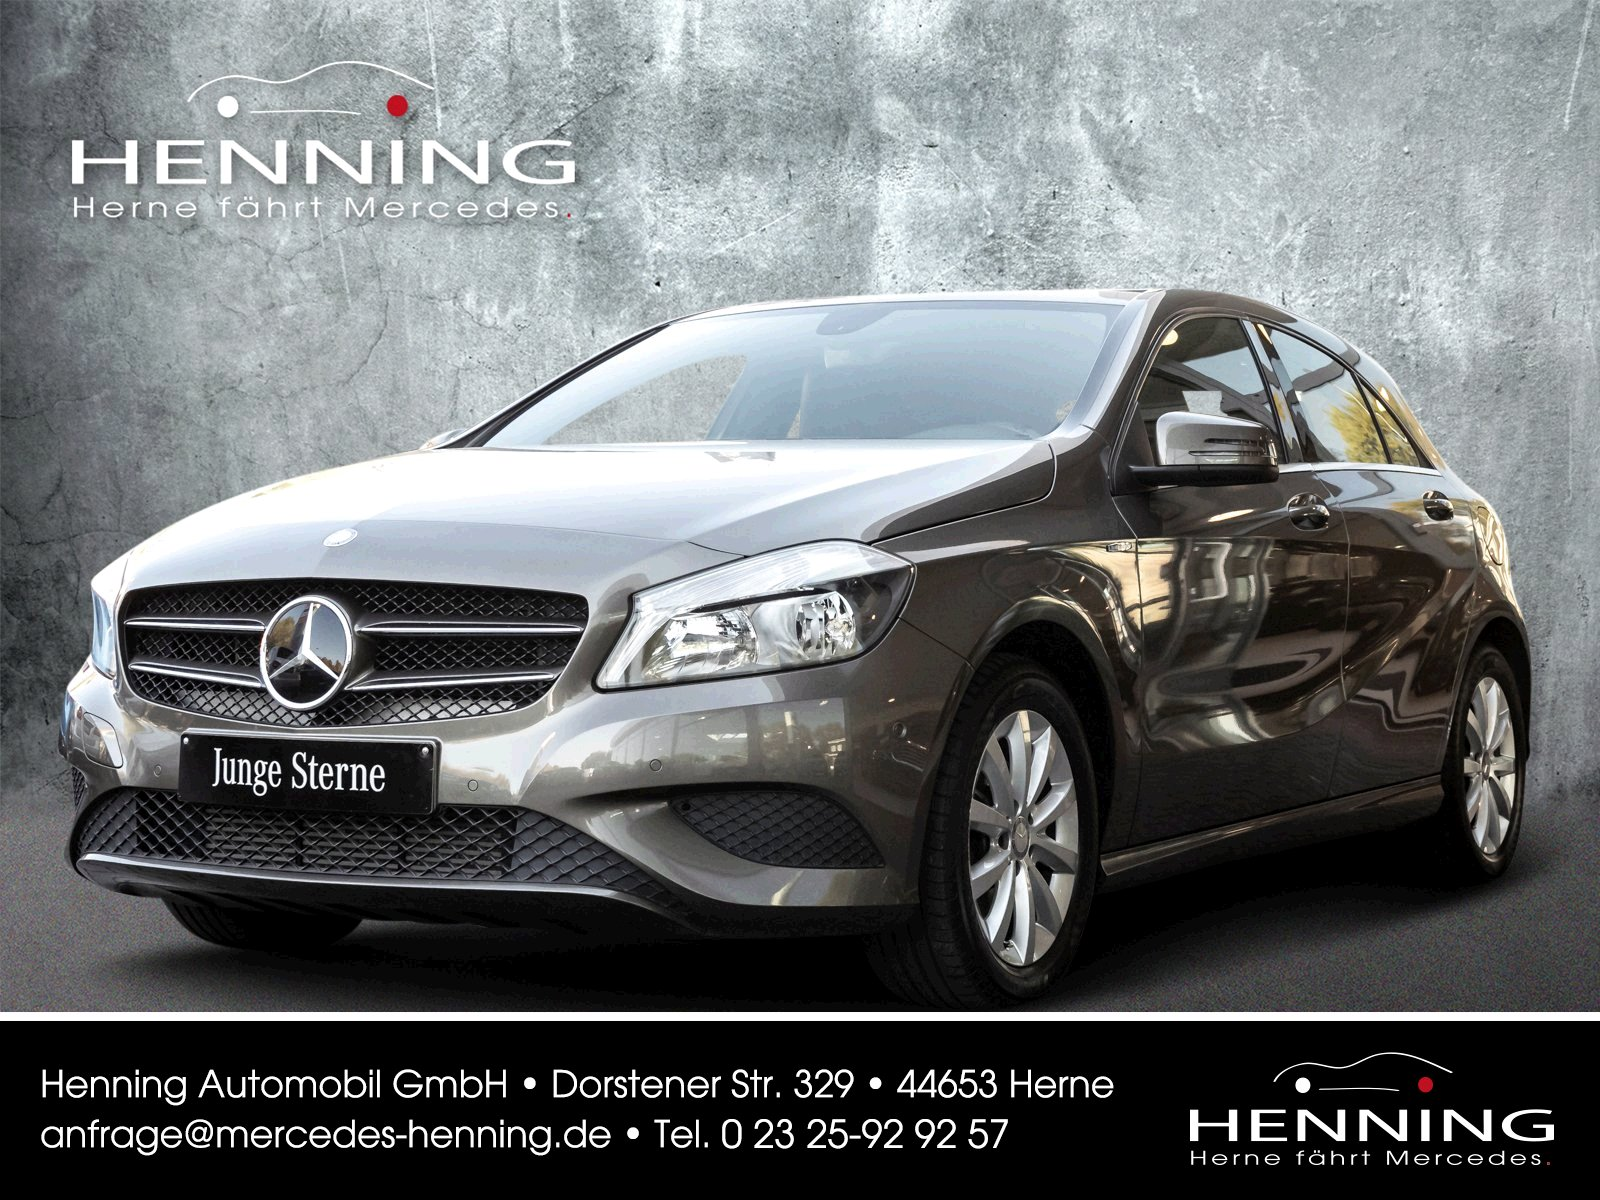 MERCEDES-BENZ A 180 BlueEFFICIENCY Limousine